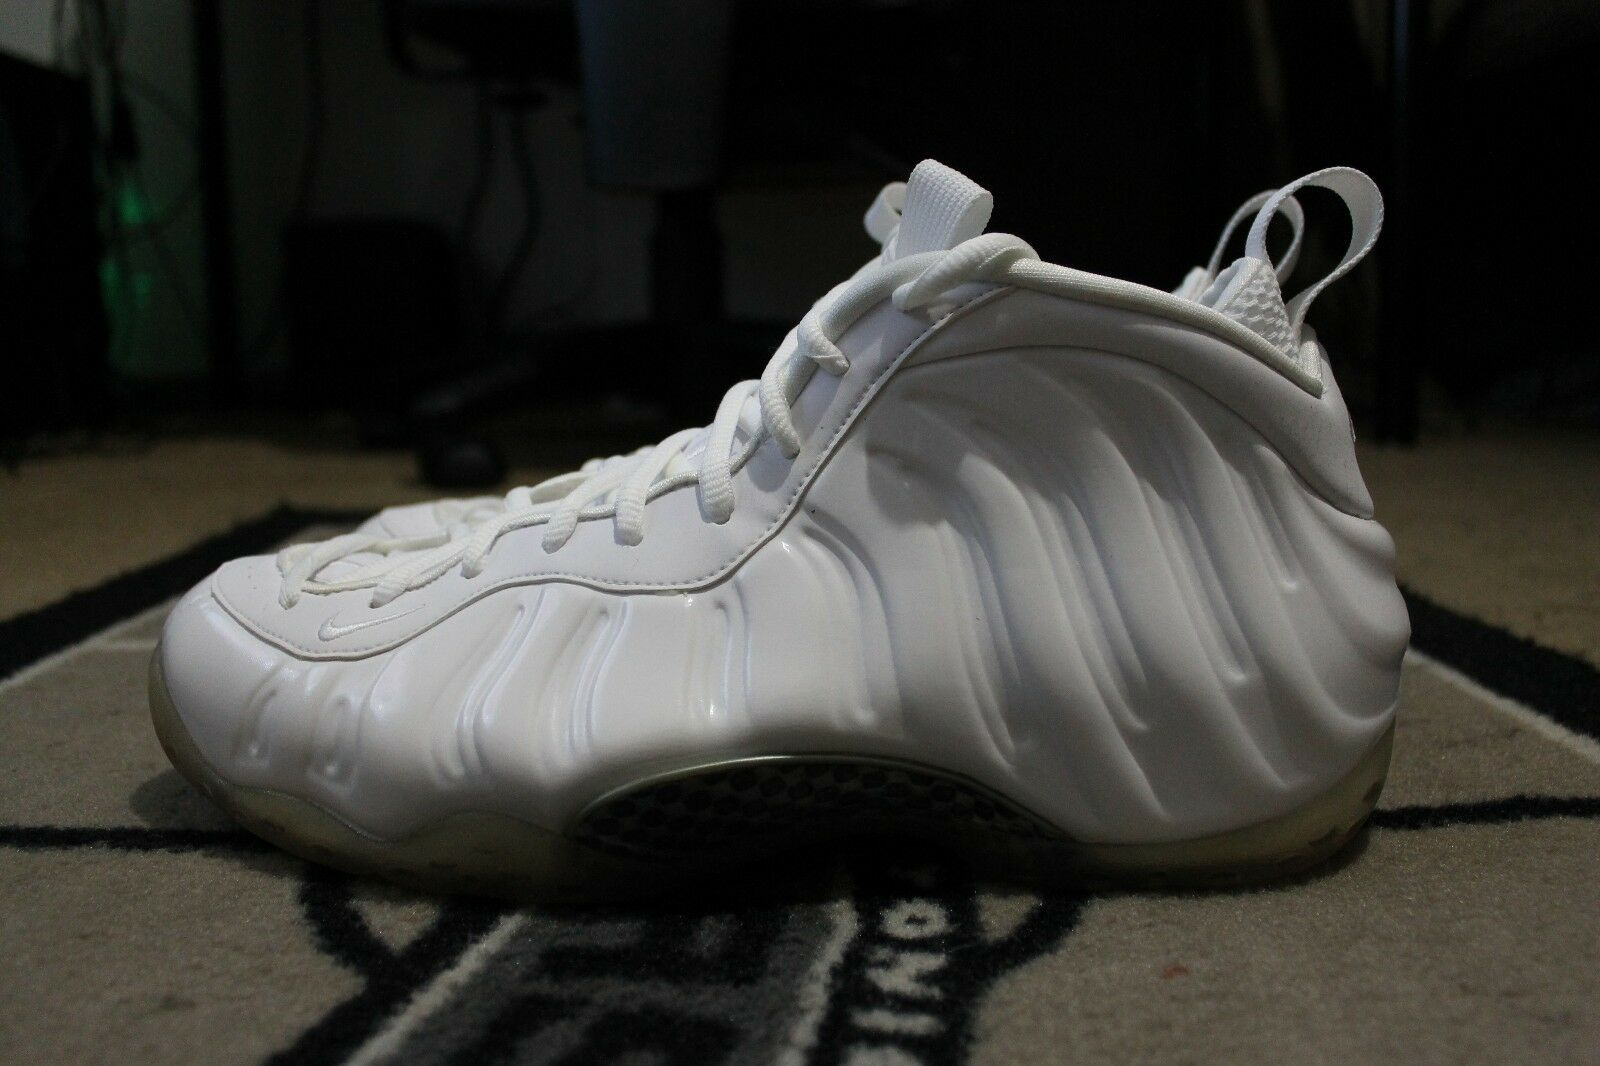 NEW NIKE AIR FOAMPOSITE ONE 1 PENNY WHITEOUT WHITE BLACK 314996-100 SZ 8